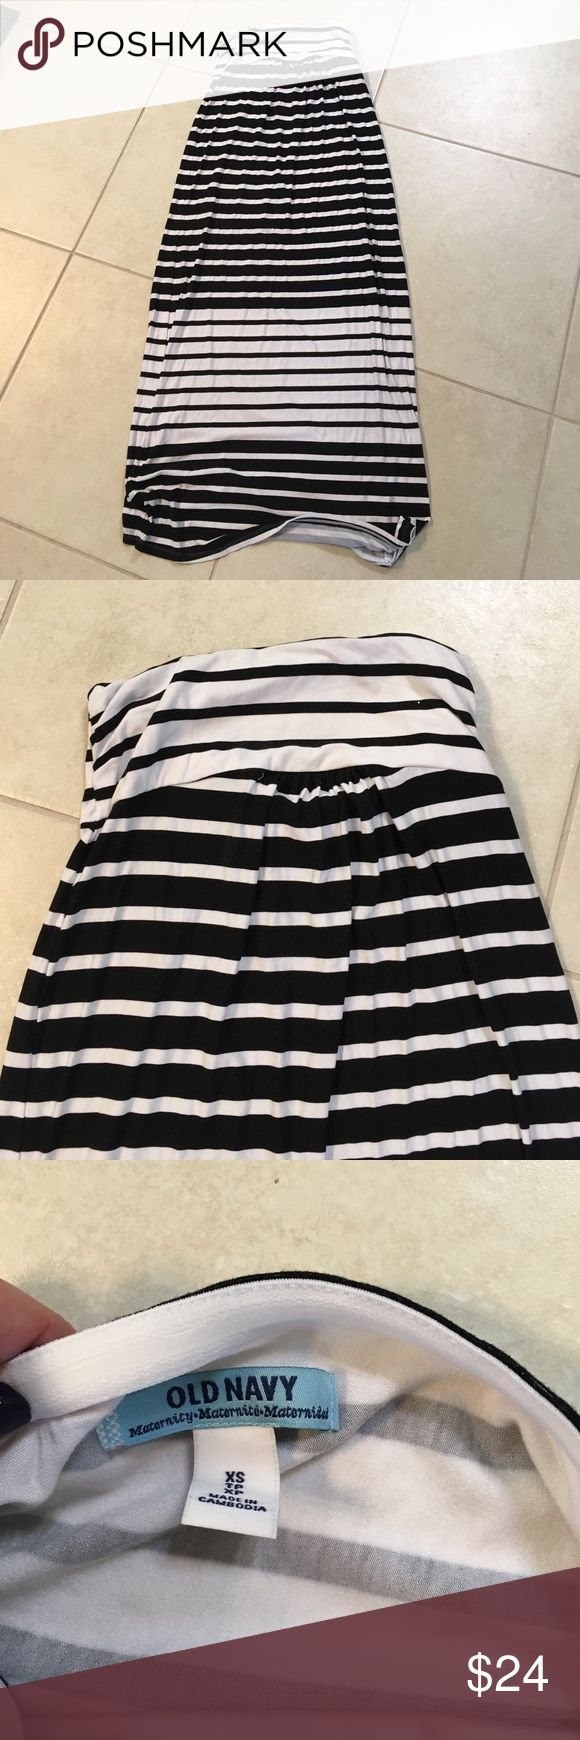 Beautiful striped maternity maxi dress 🤰🏼 Worn once! Comfy and versatile.  🤰🏼Check out my other maternity listings and bundle for discounts 🤰🏼 (old navy brand listed under motherhood to reach more mamas!) Motherhood Maternity Dresses Maxi